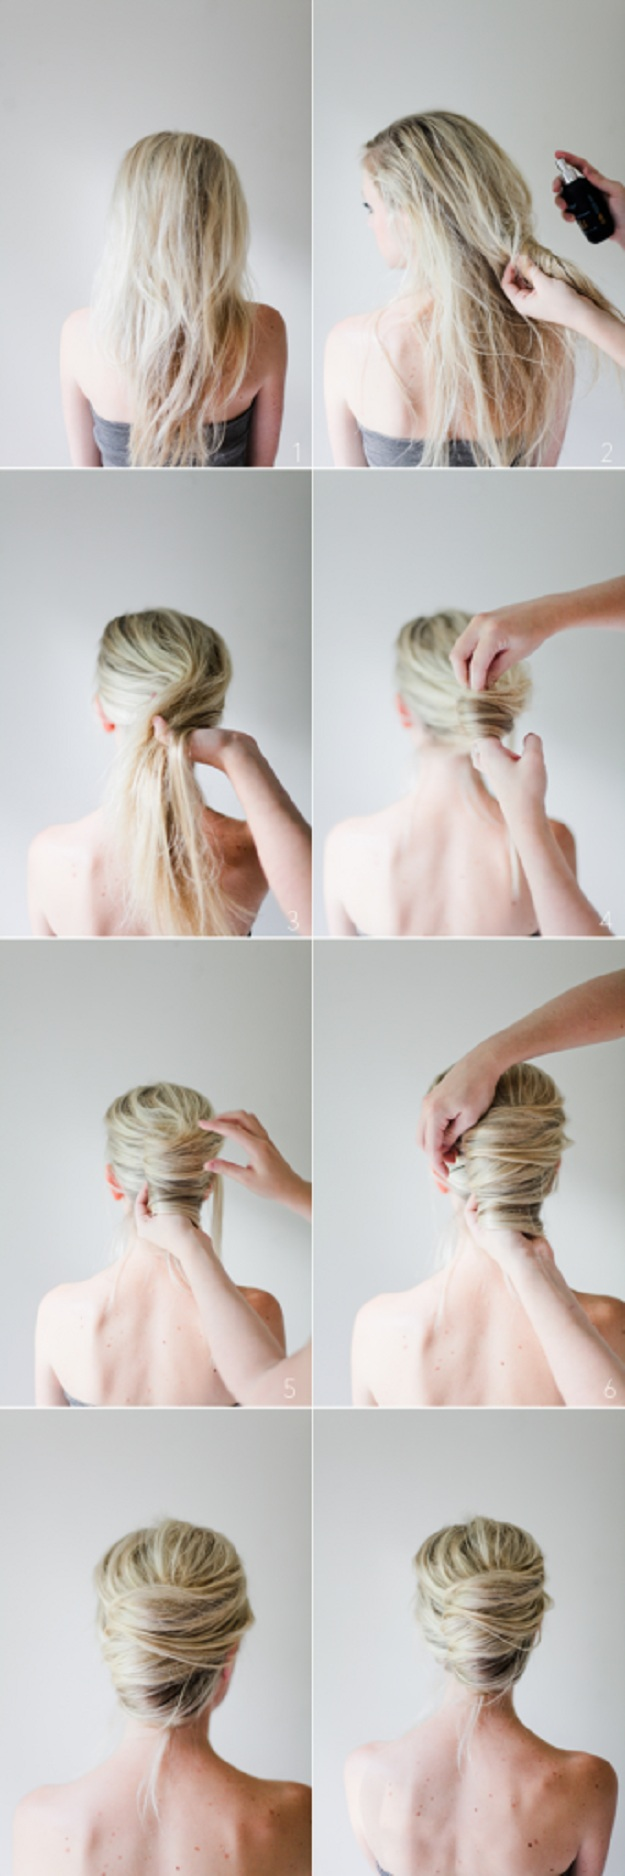 32 Chic 5 Minute Hairstyles Tutorials You May Love Styles